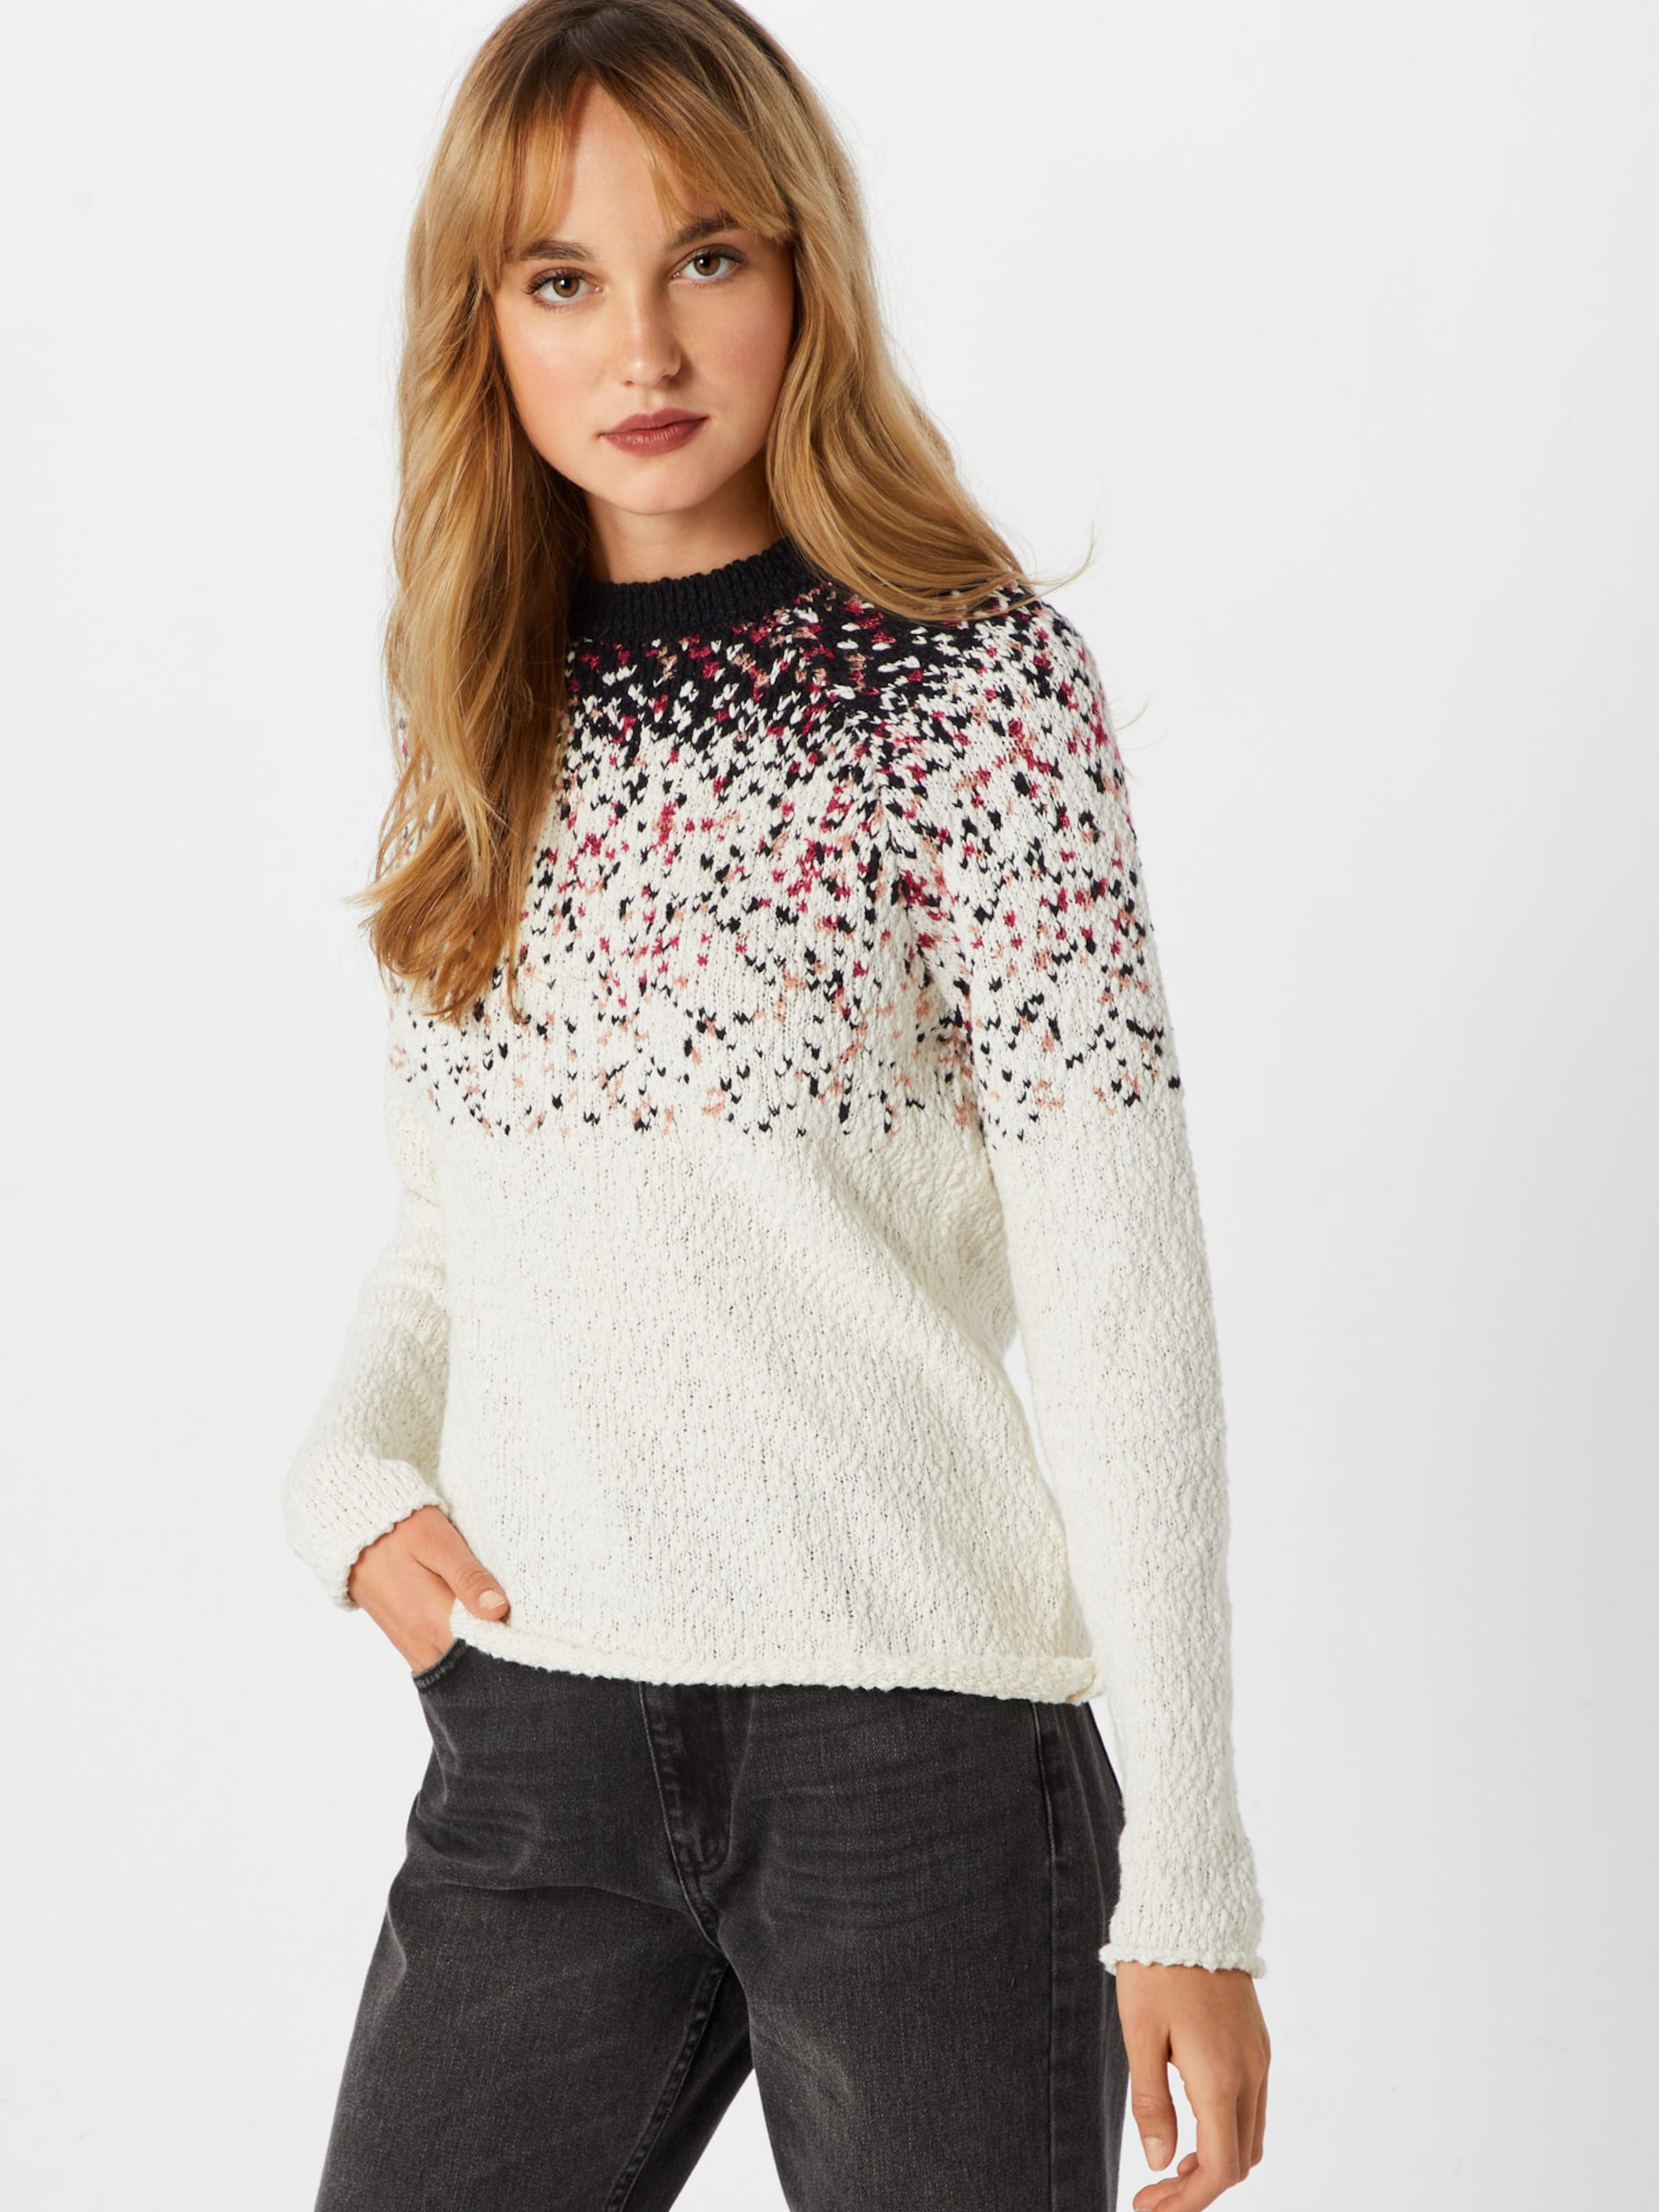 Pull 'pixel Knit' En over Blanc Review GrenadineNoir Naturel 0PnwOk